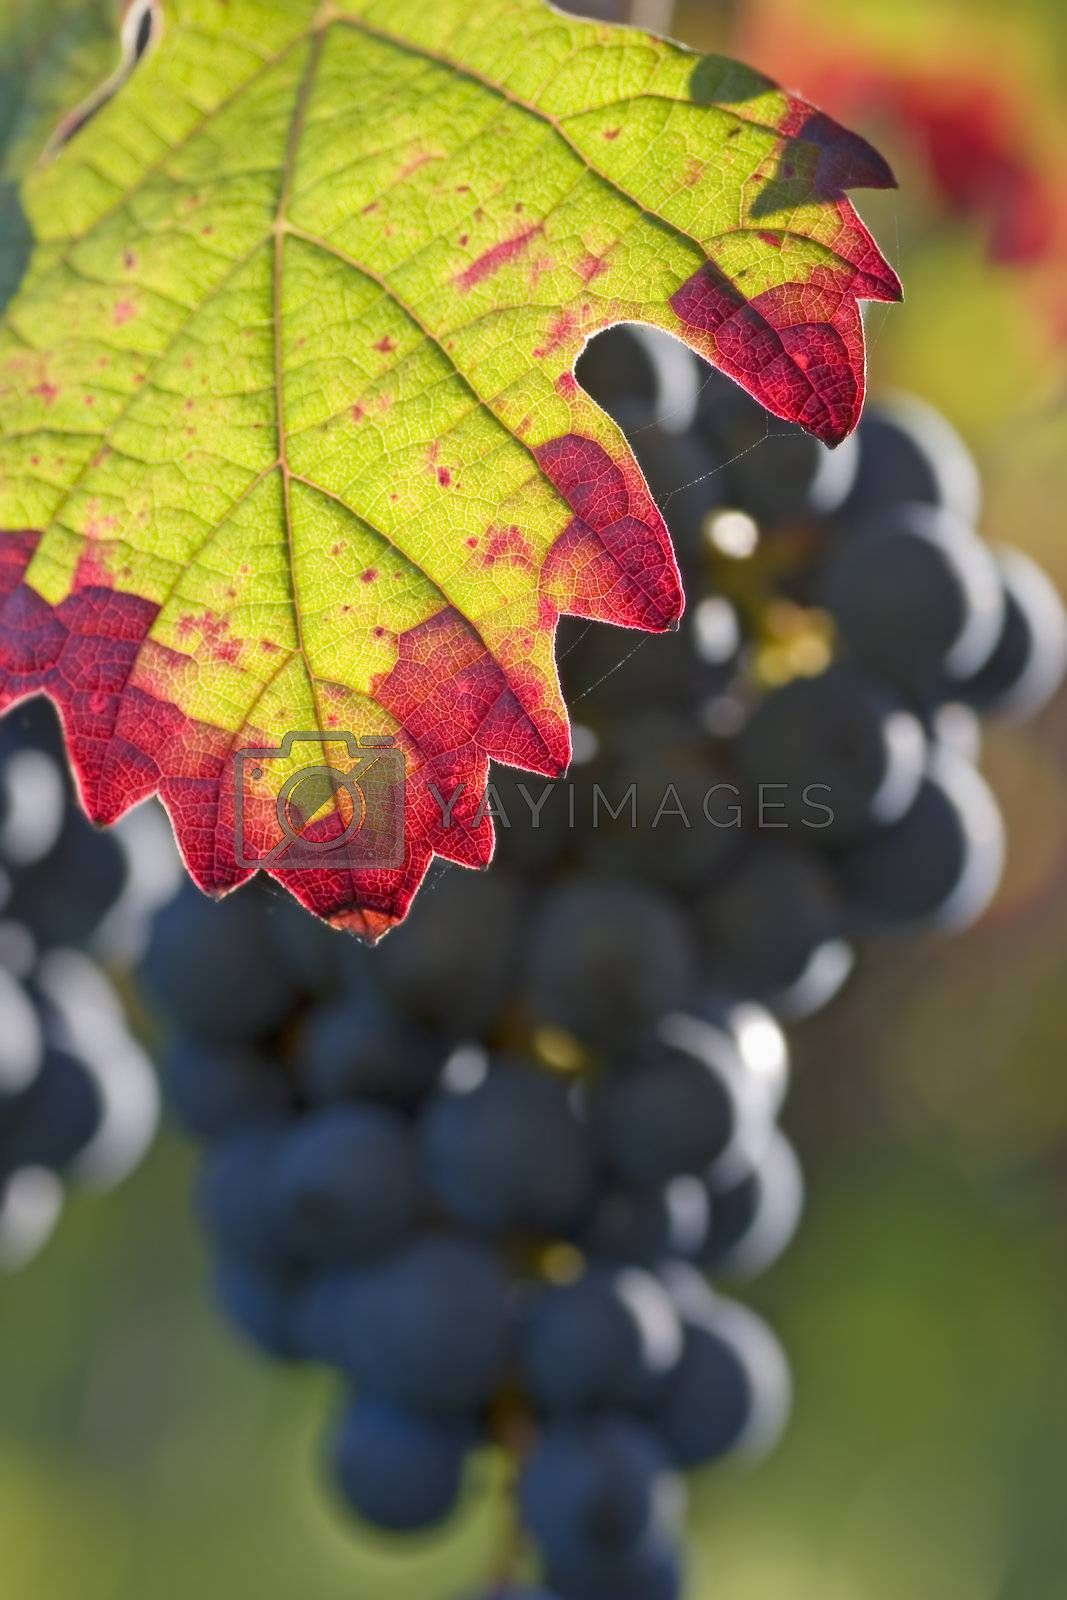 Fall impression in a vineyard by ArtmannWitte